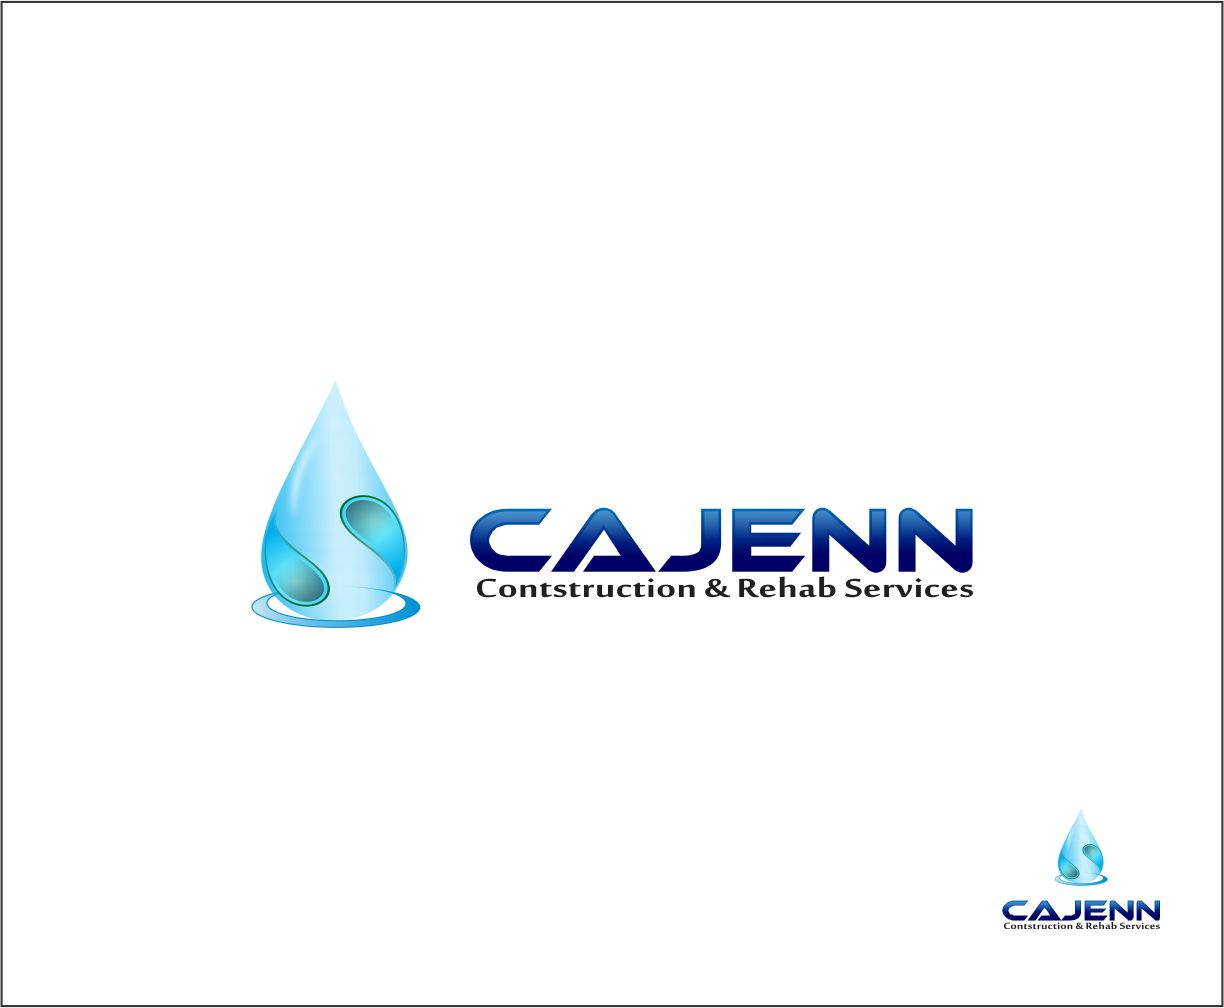 Logo Design by Agus Martoyo - Entry No. 204 in the Logo Design Contest New Logo Design for CaJenn Construction & Rehab Services.